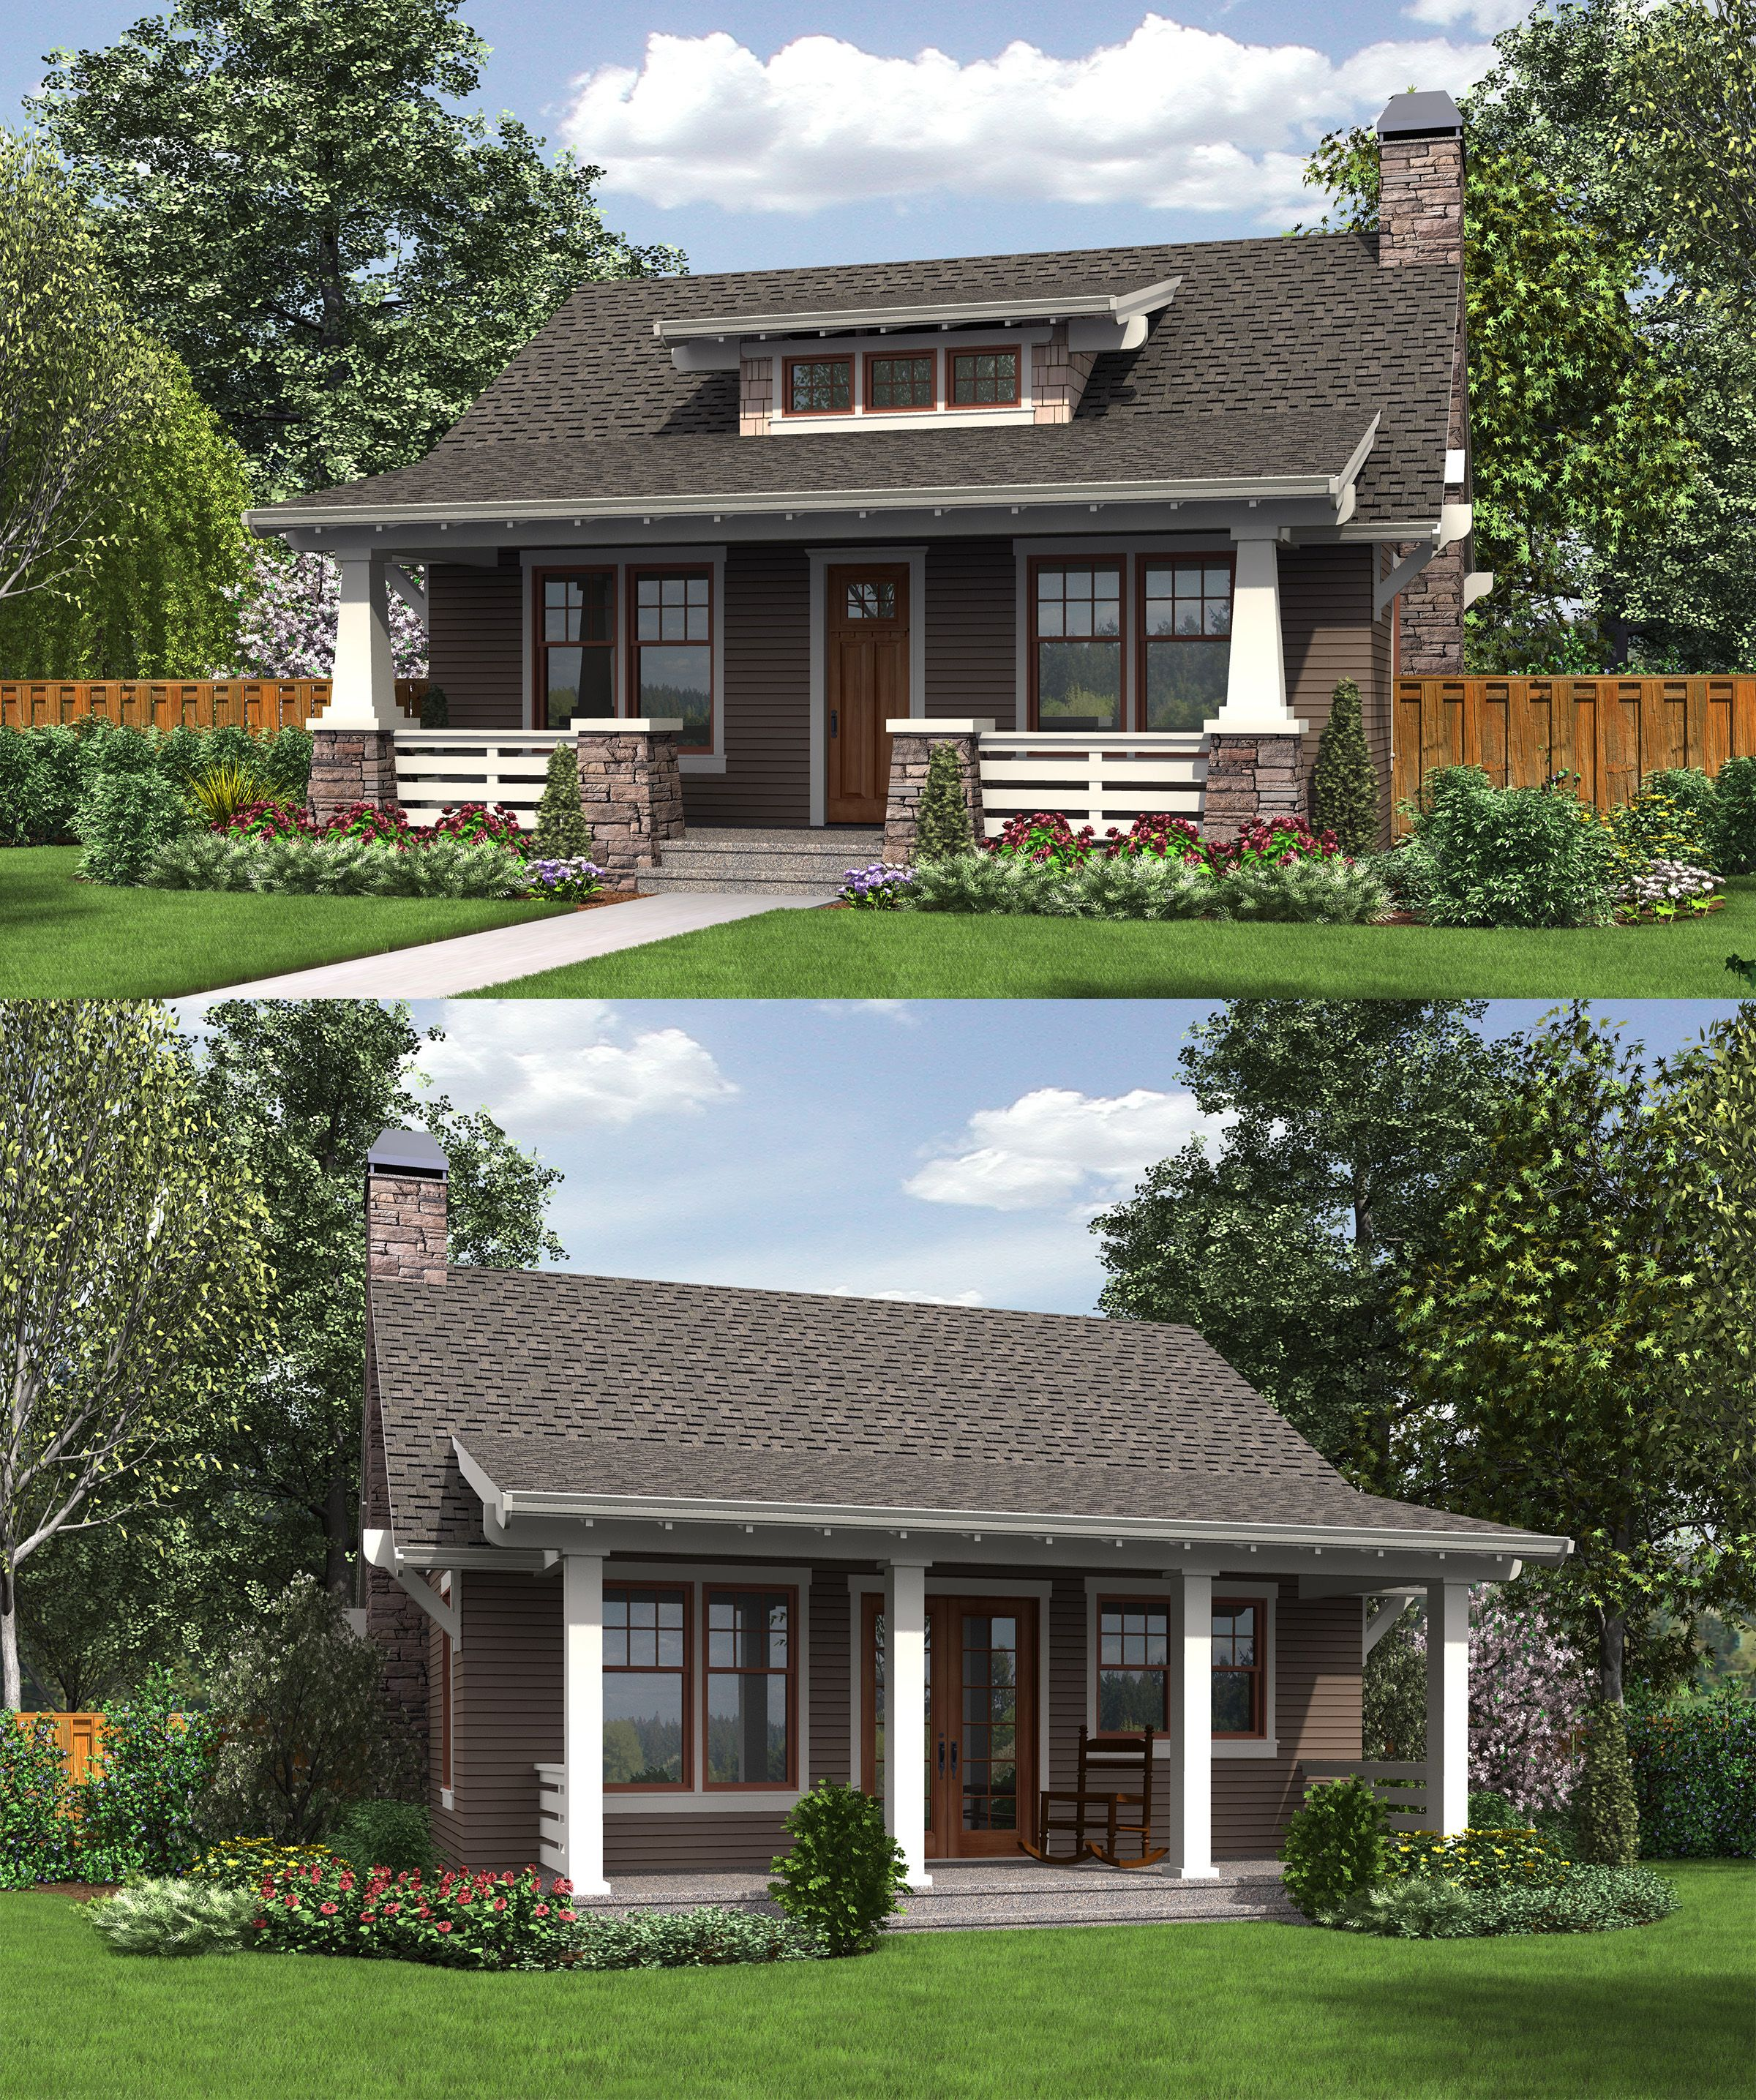 Plan 69623am bungalow with guest bed house plans guest Barn guest house plans